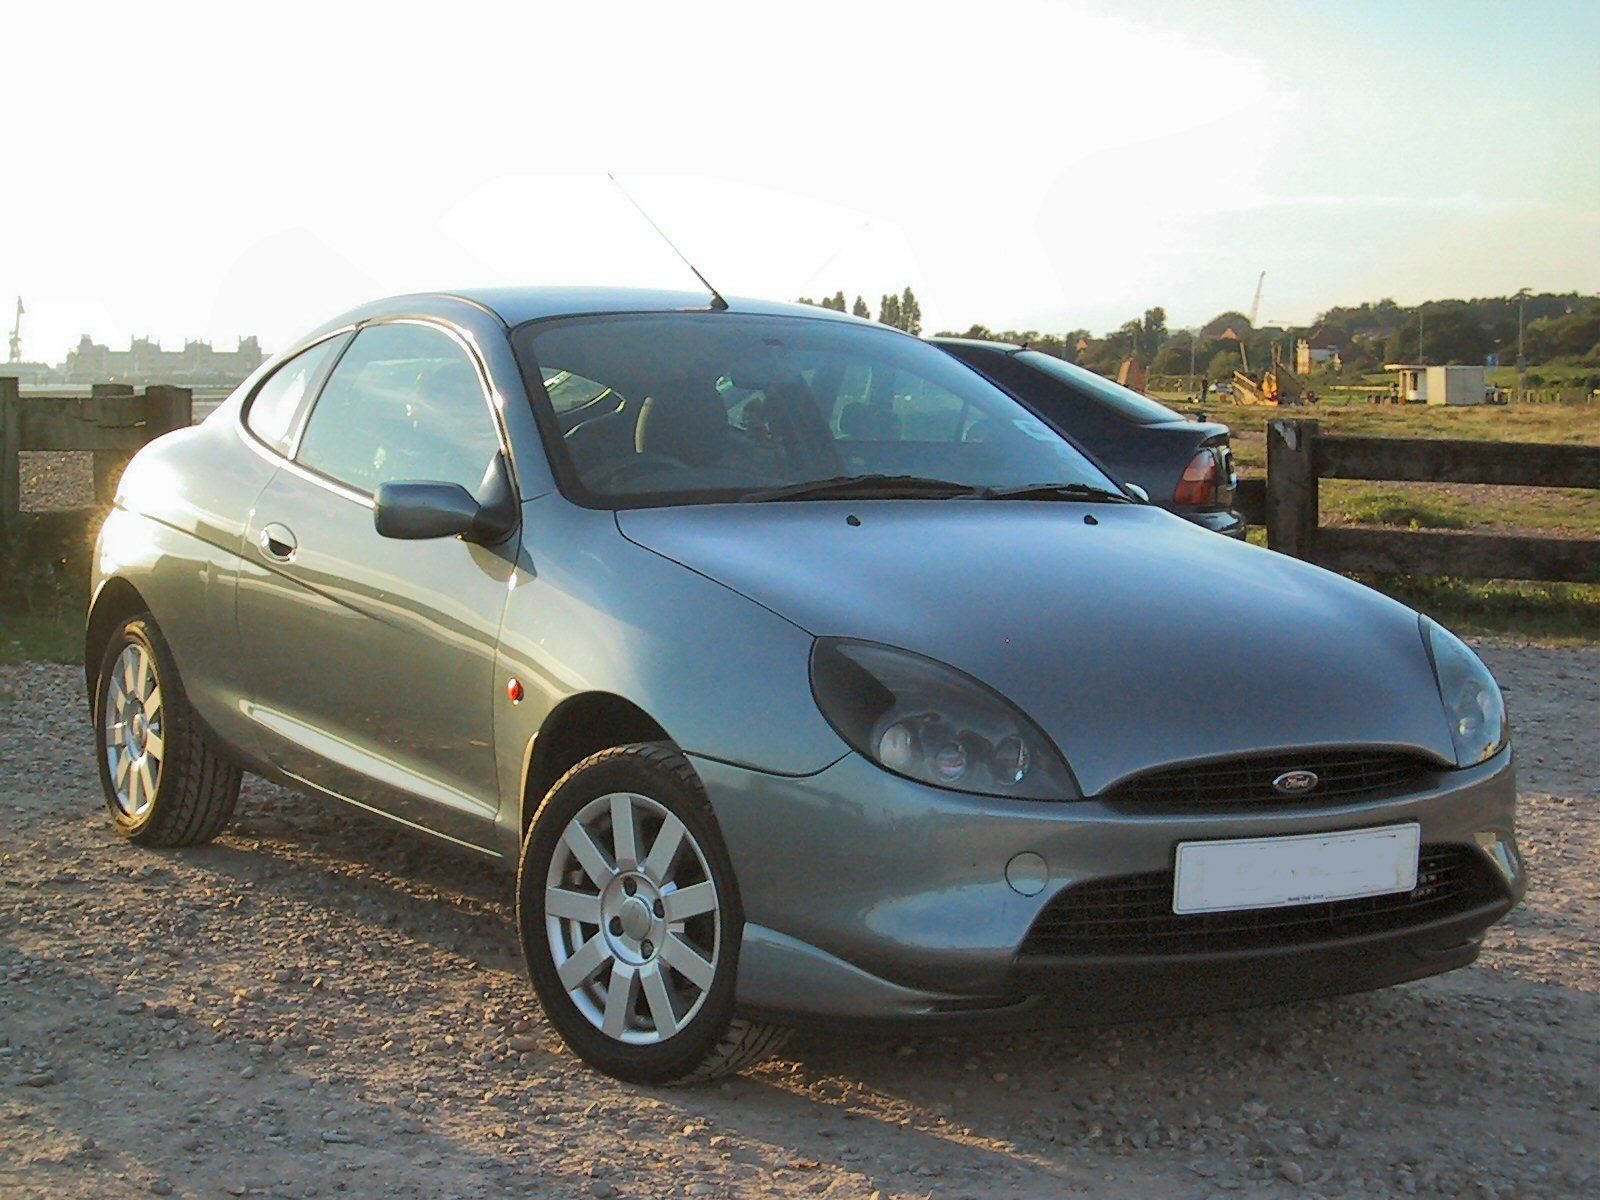 Ford Puma Euro Cars Ford Puma Ford Mustang Models Ford Models